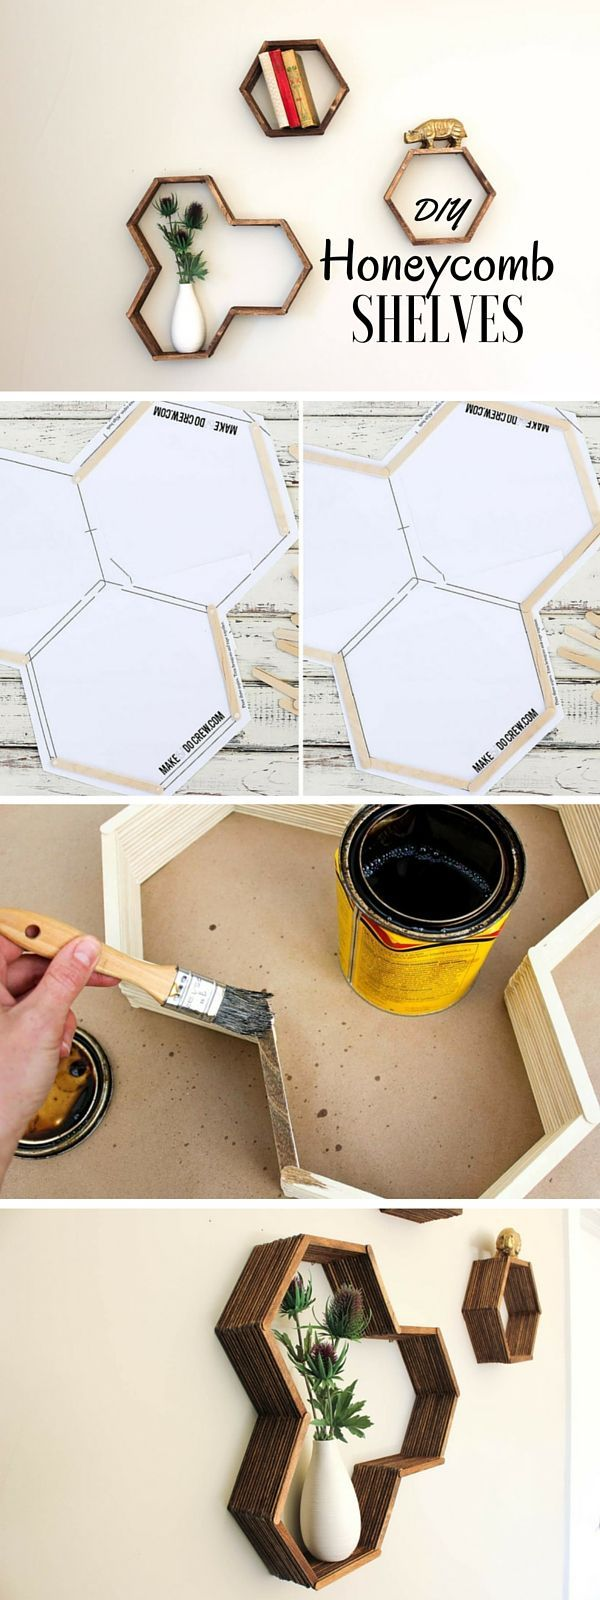 222 best Wall Craft images on Pinterest | Creative crafts, Good ...